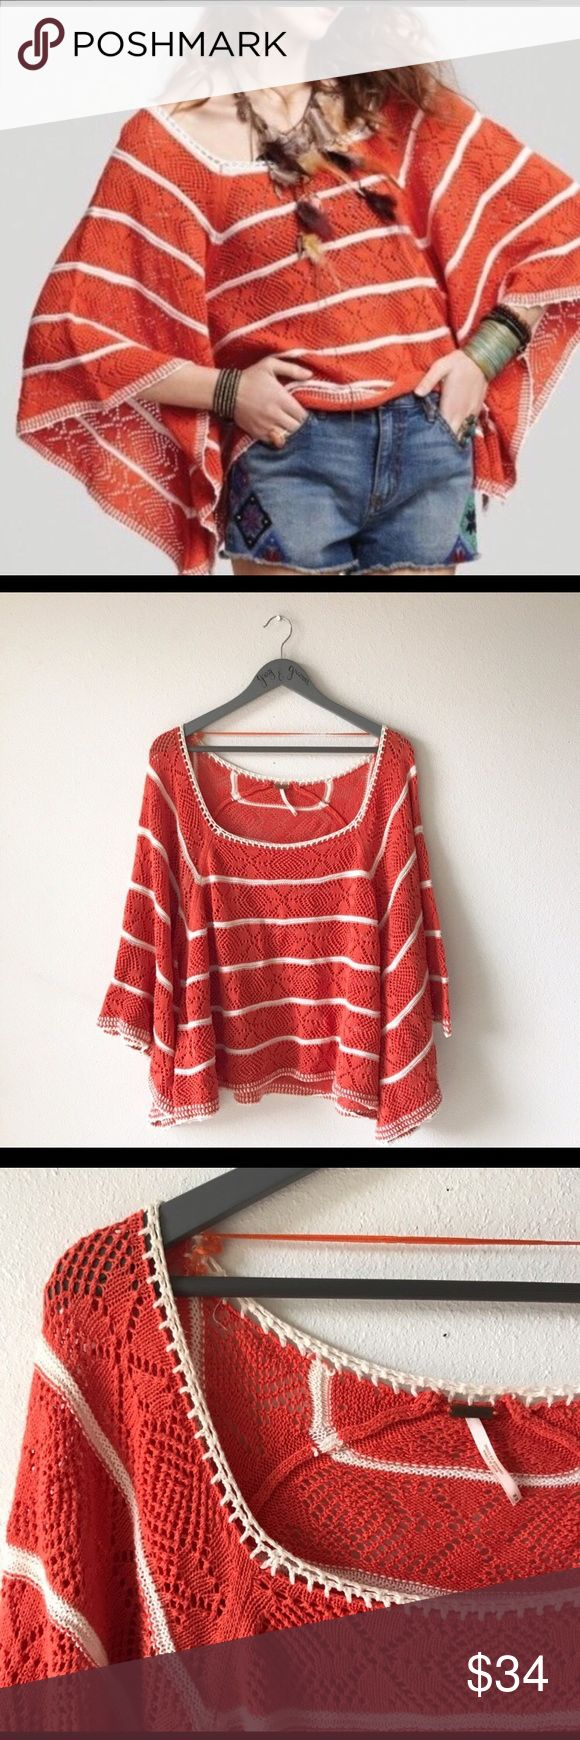 Free people la Bonita crochet orange white pancho This cotton Pancho is perfect for spring and summer!! It's perfect for the beach, vacation or just hanging out at the park or bbq. This runs big so can easily fit a small. Free People Sweaters Shrugs & Ponchos